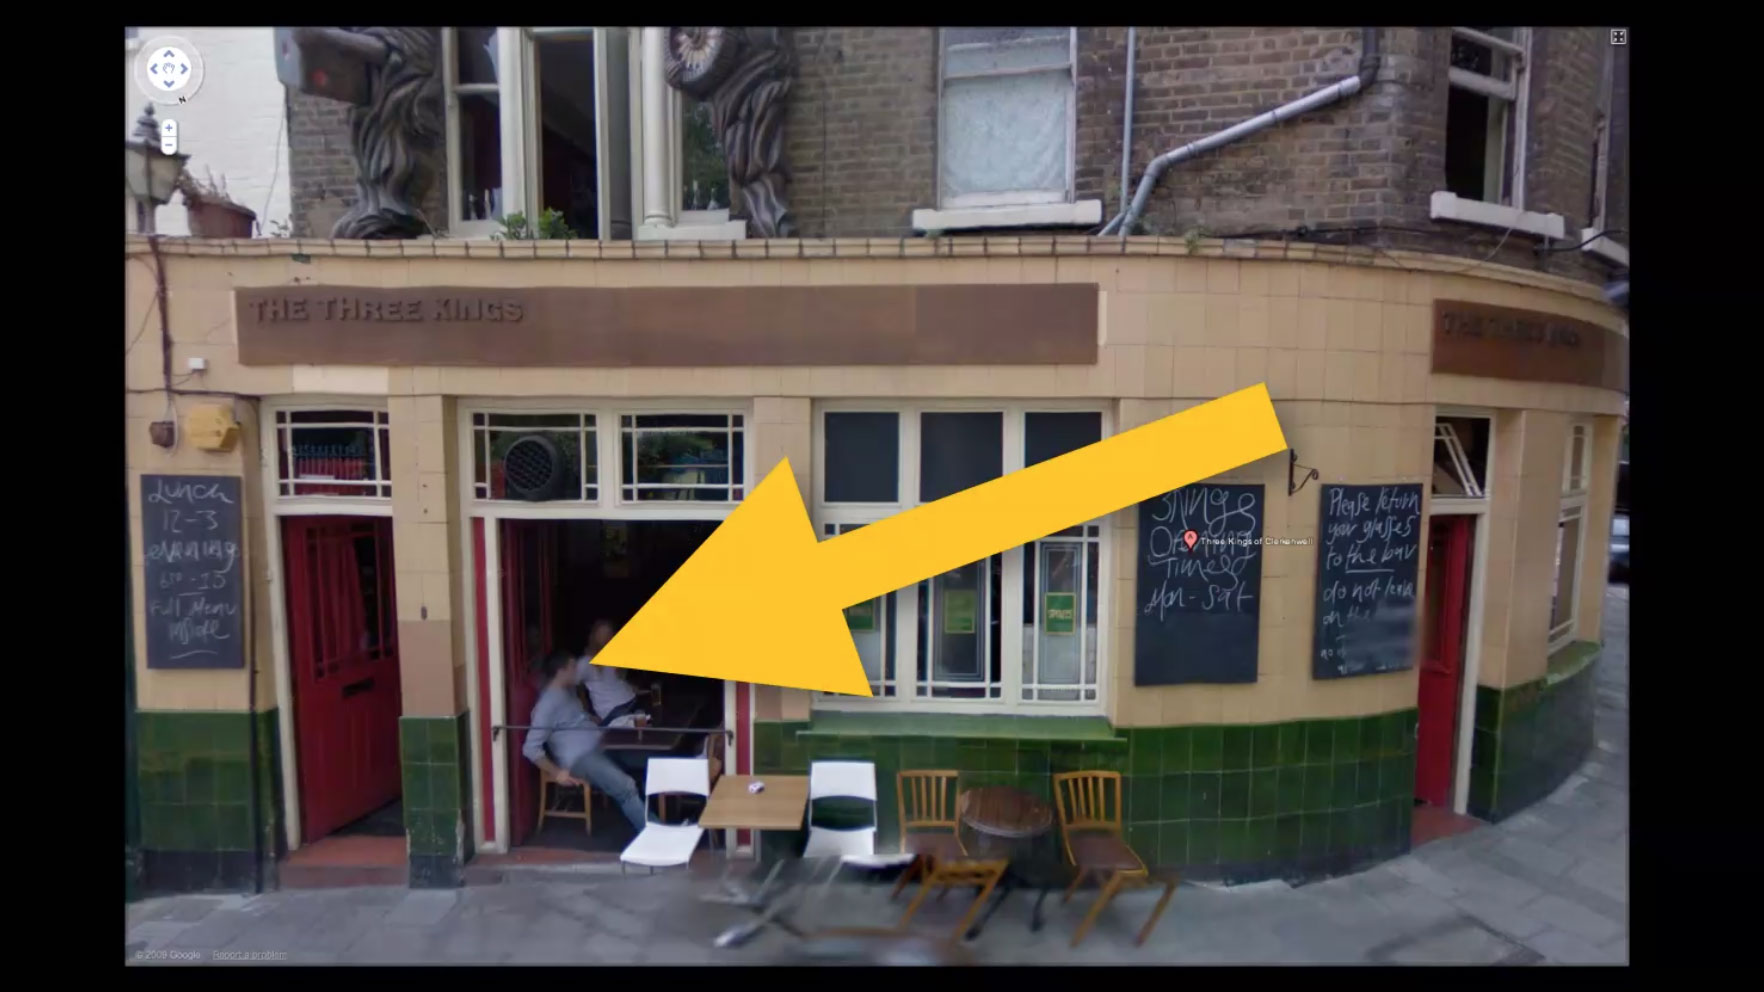 exterior of a pub with giant arrow poointing to Matt Willey